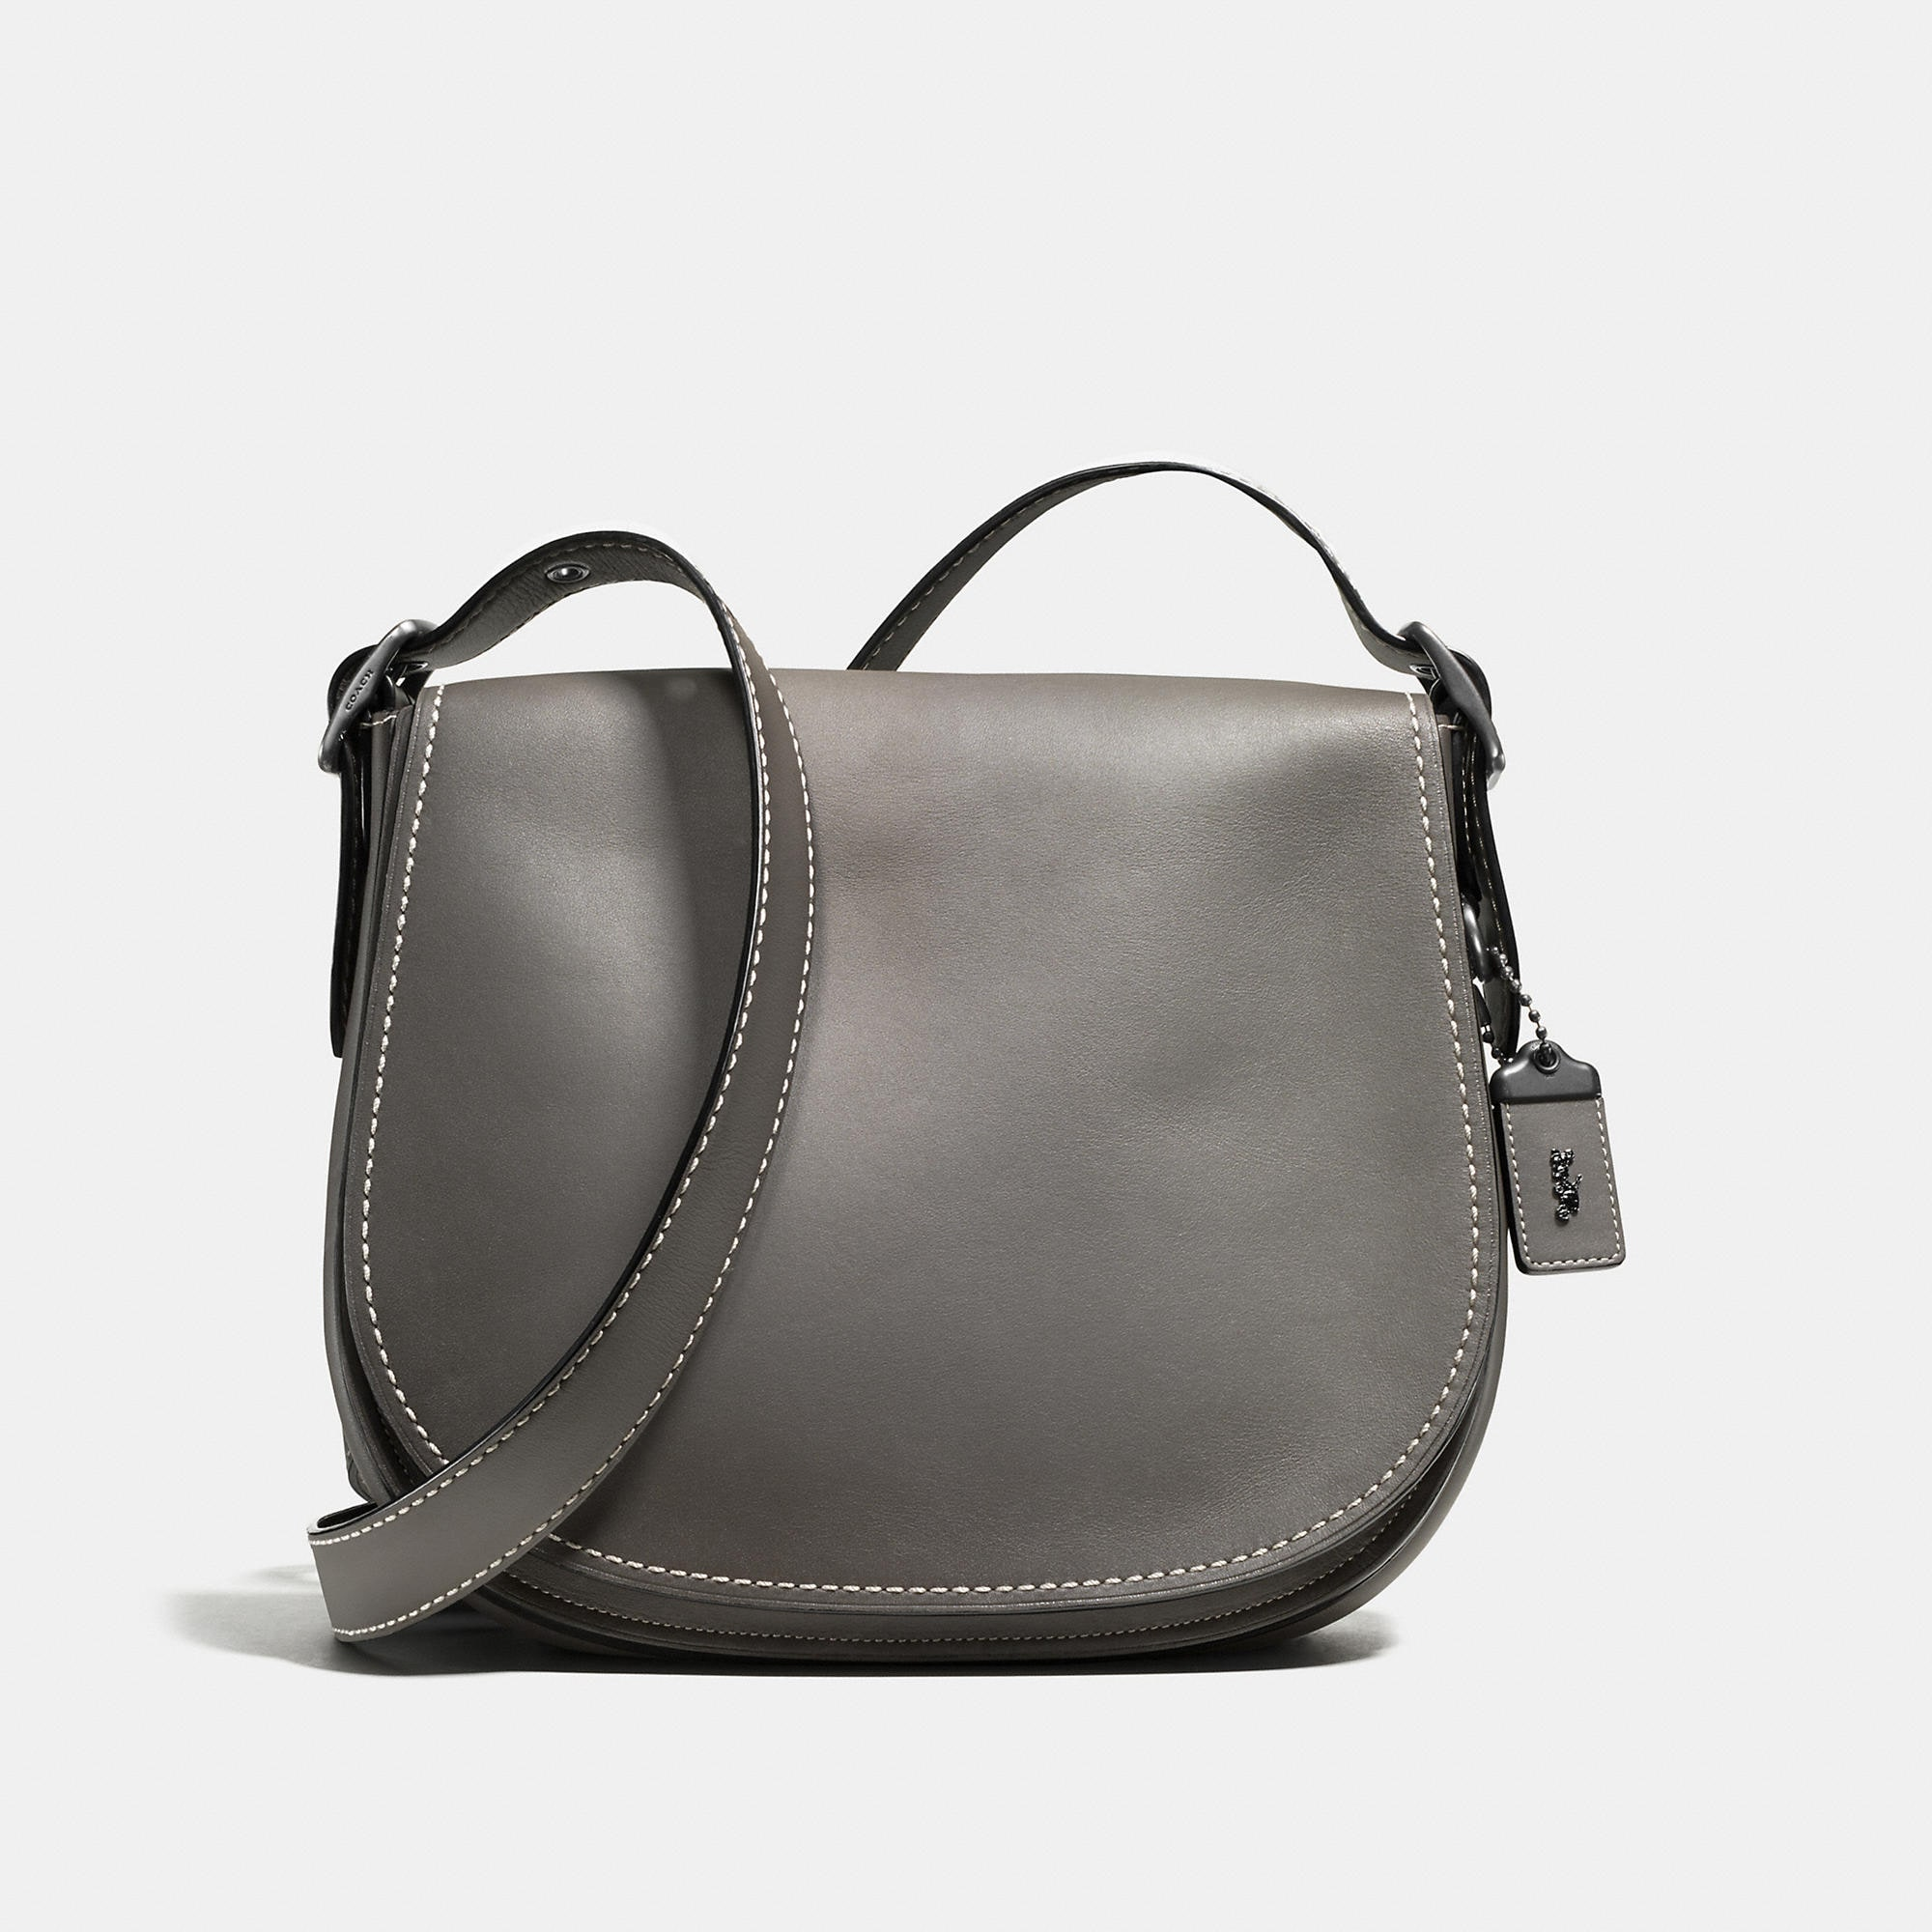 Coach Saddle Bag In Burnished Glovetanned Leather